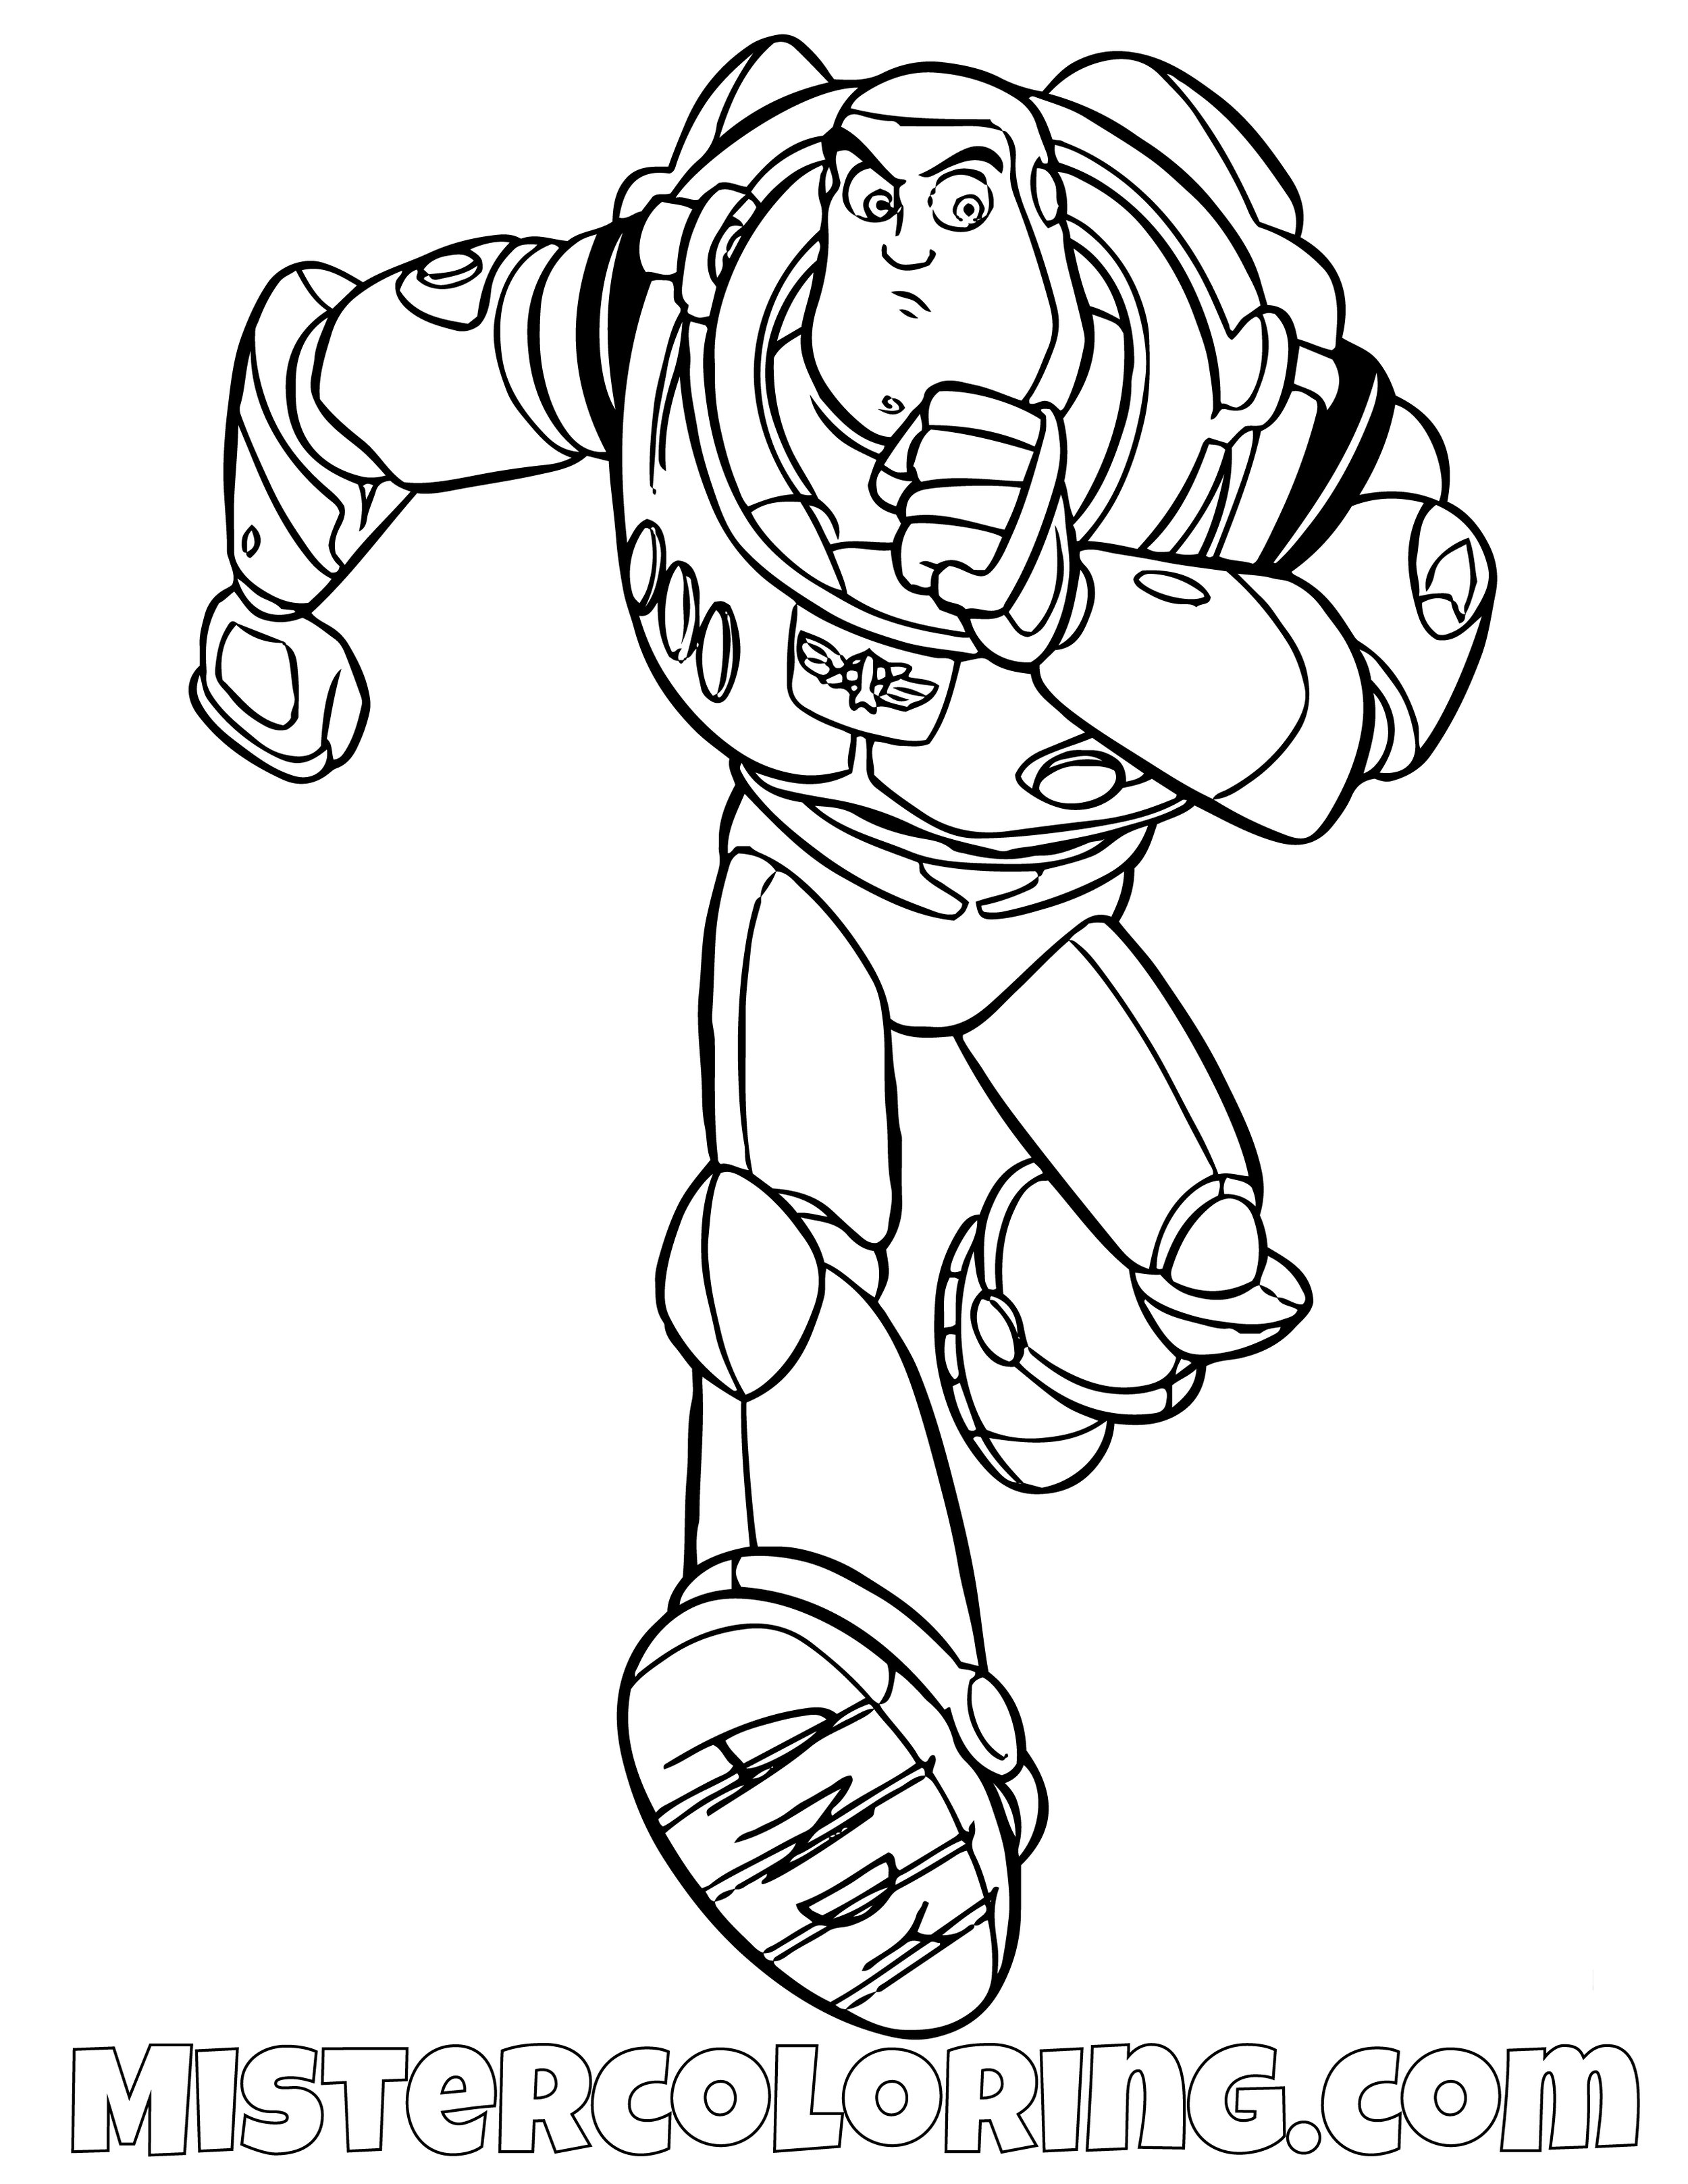 Buzz Lightyear Running Toy Story Coloring Page